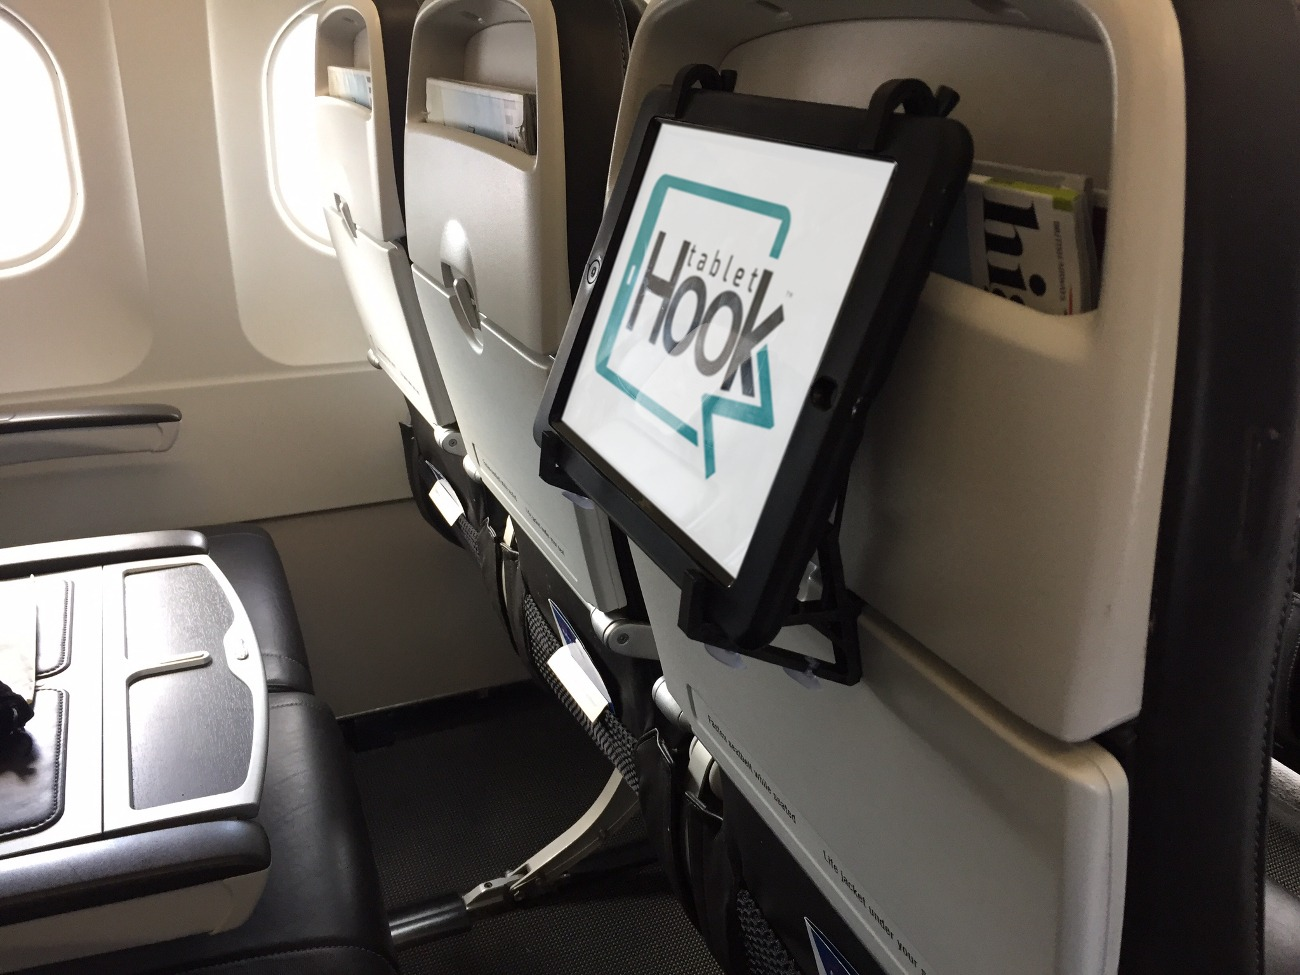 TabletHookz – Create Your Own Seatback Entertainment